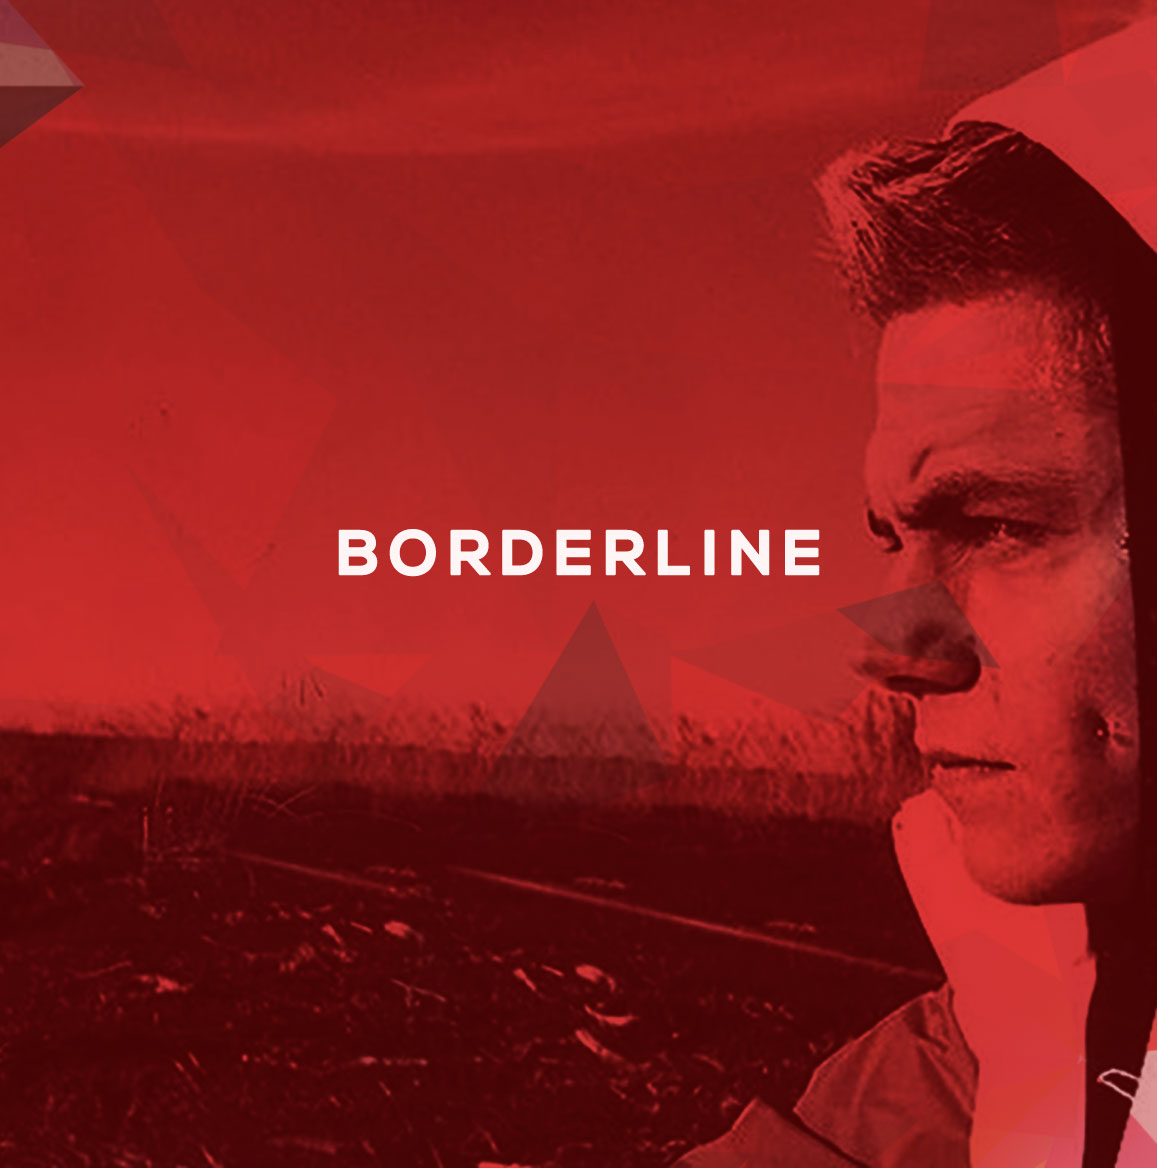 HP-Act-borderline